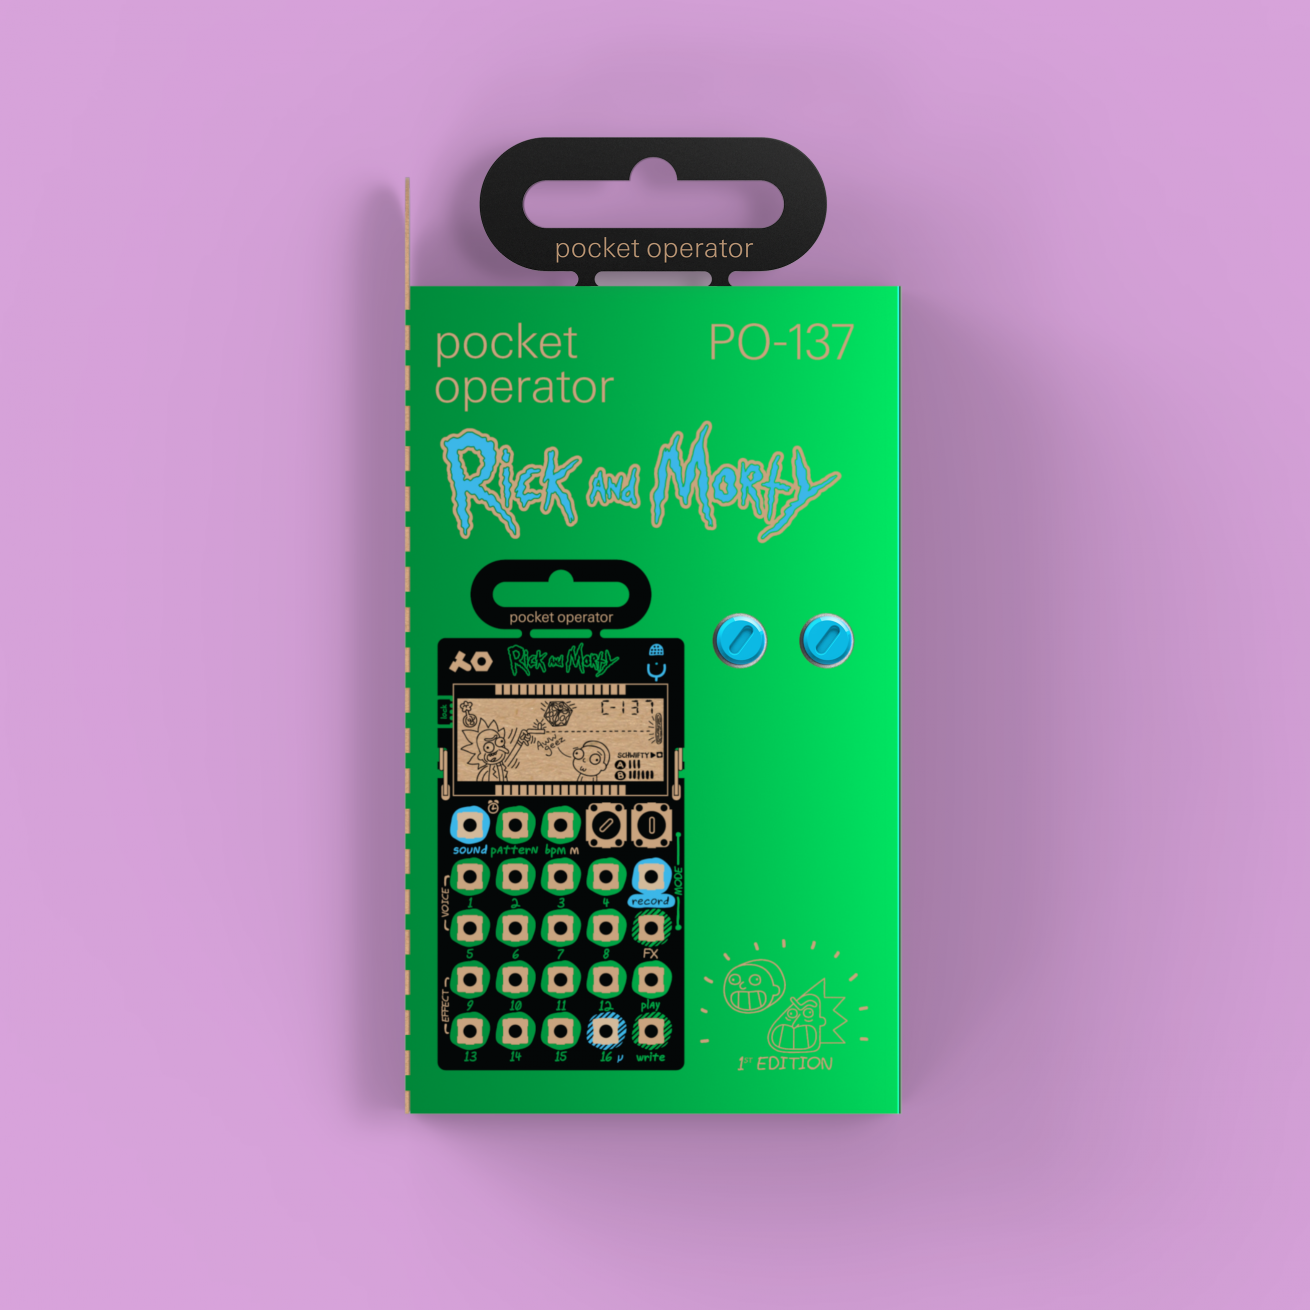 rick and morty temalı synthesizer almak isteyen?